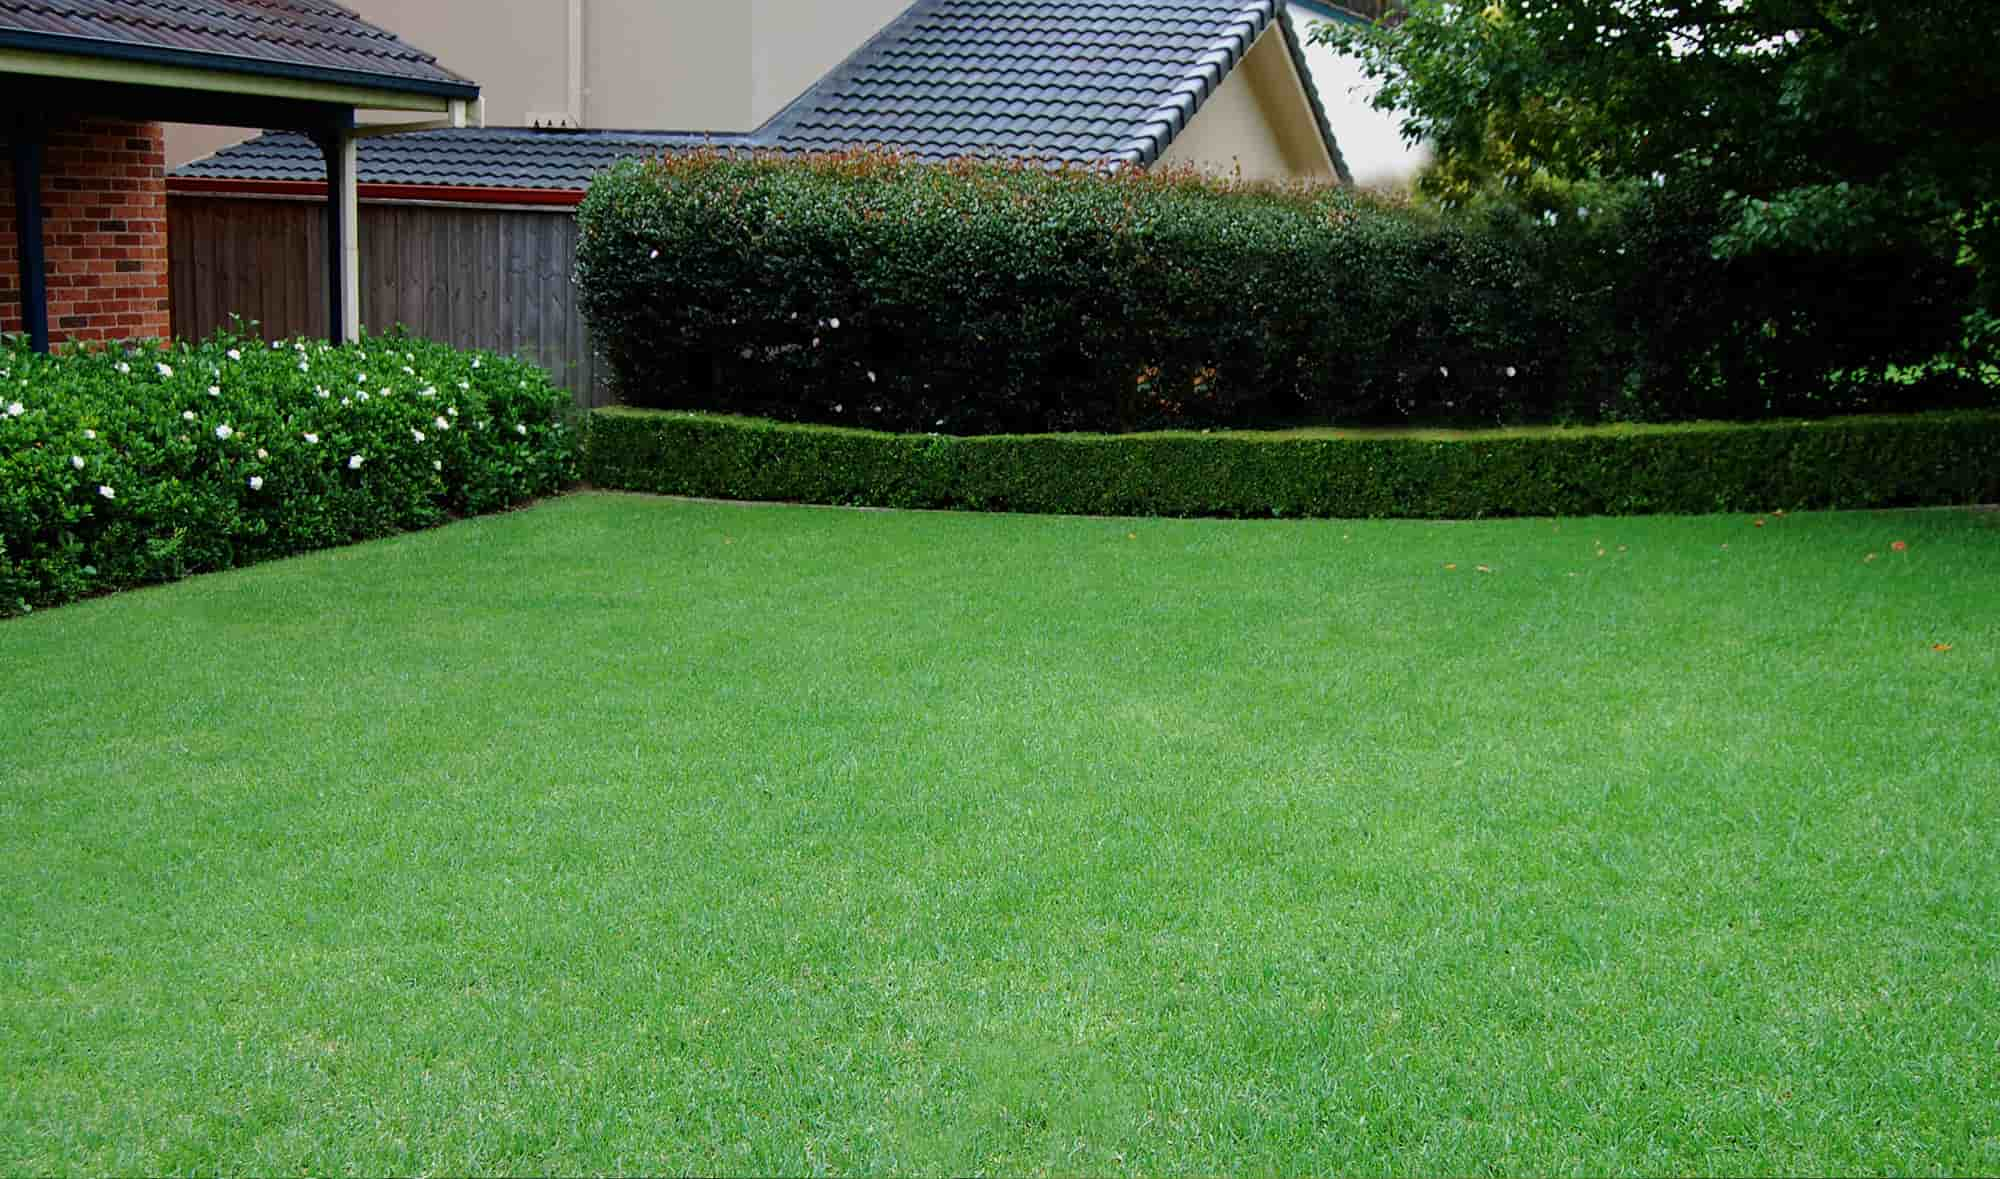 How to Find the Best Online Tips For Lawn Care? – Amir Articles